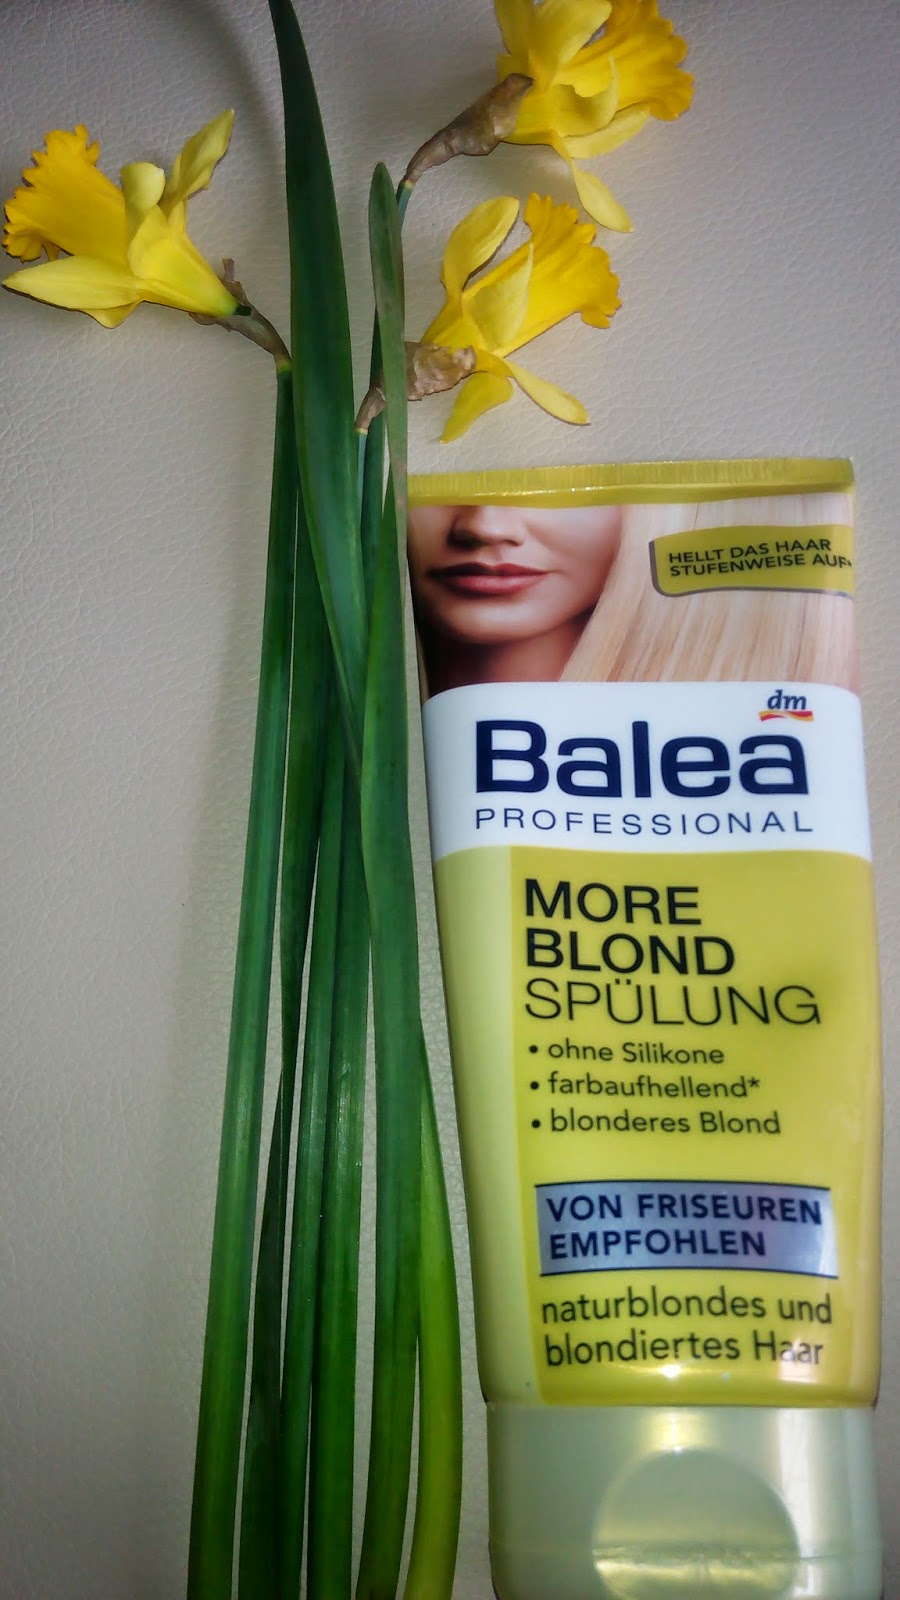 Balea Professional More Blond Spülung Review Ladys Online